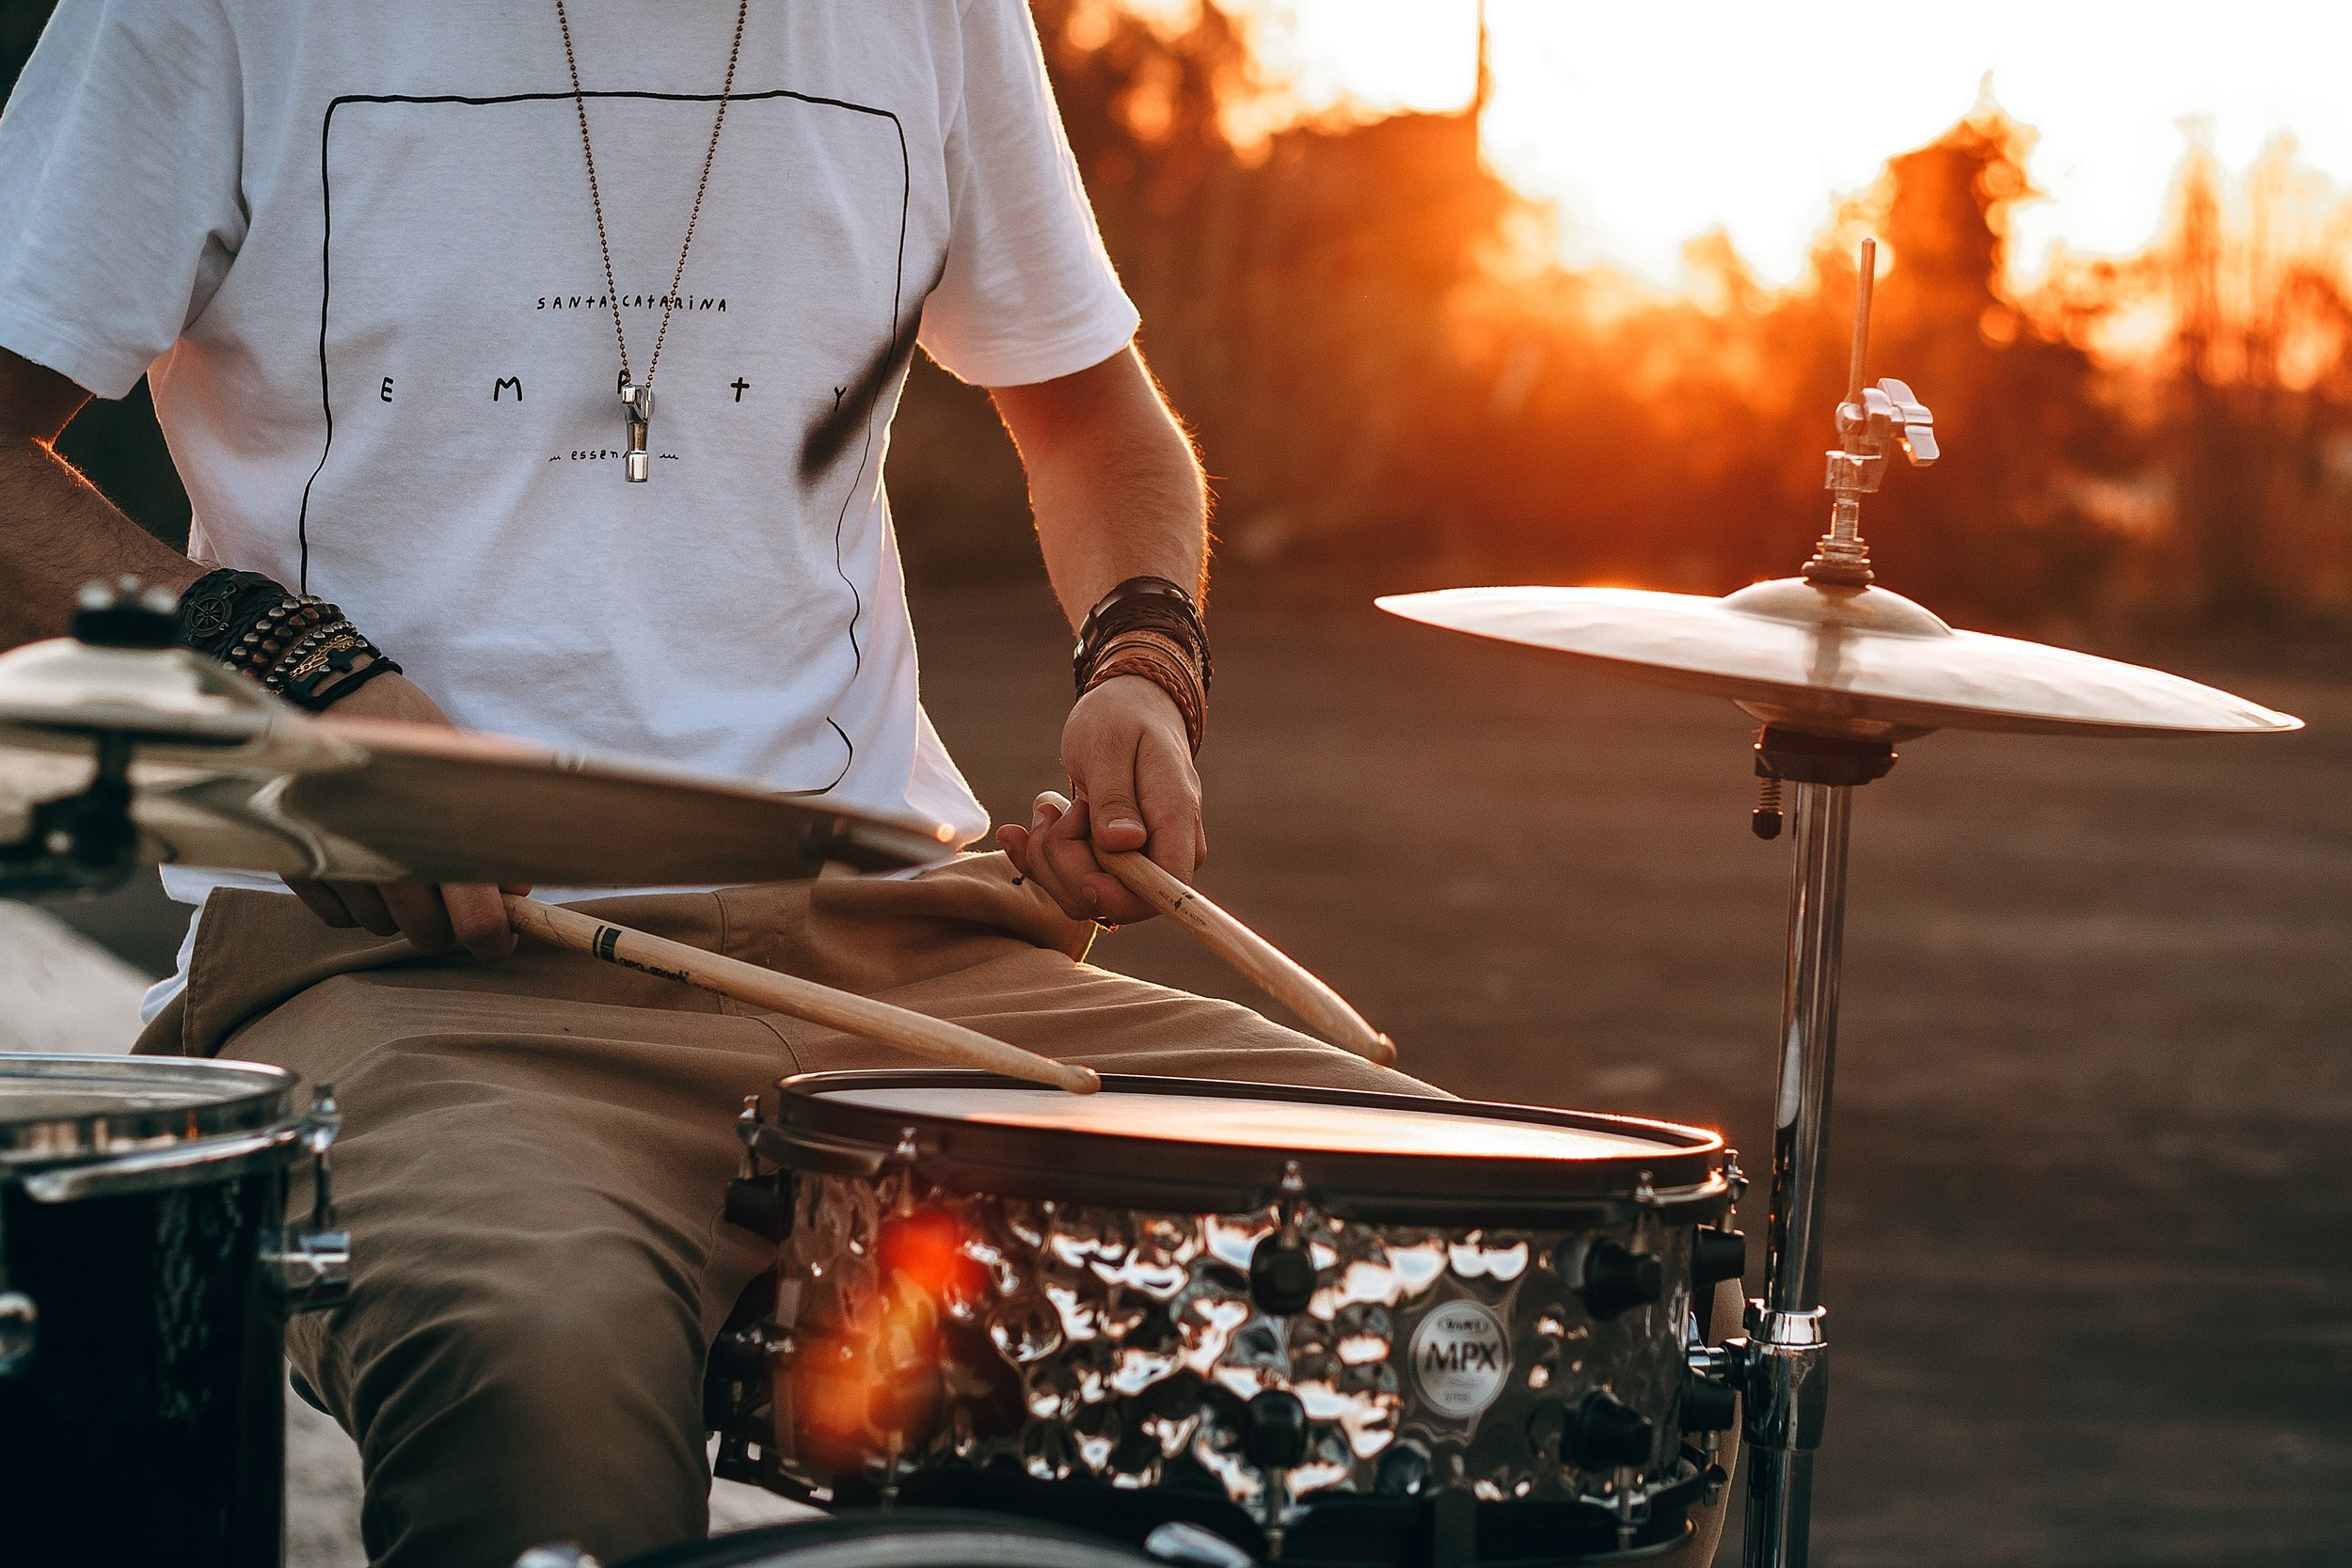 - MoodMusic builds emotion in people, and music therapy can bring out feelings that are essential for mental coping. It is a positive way to manage stress.